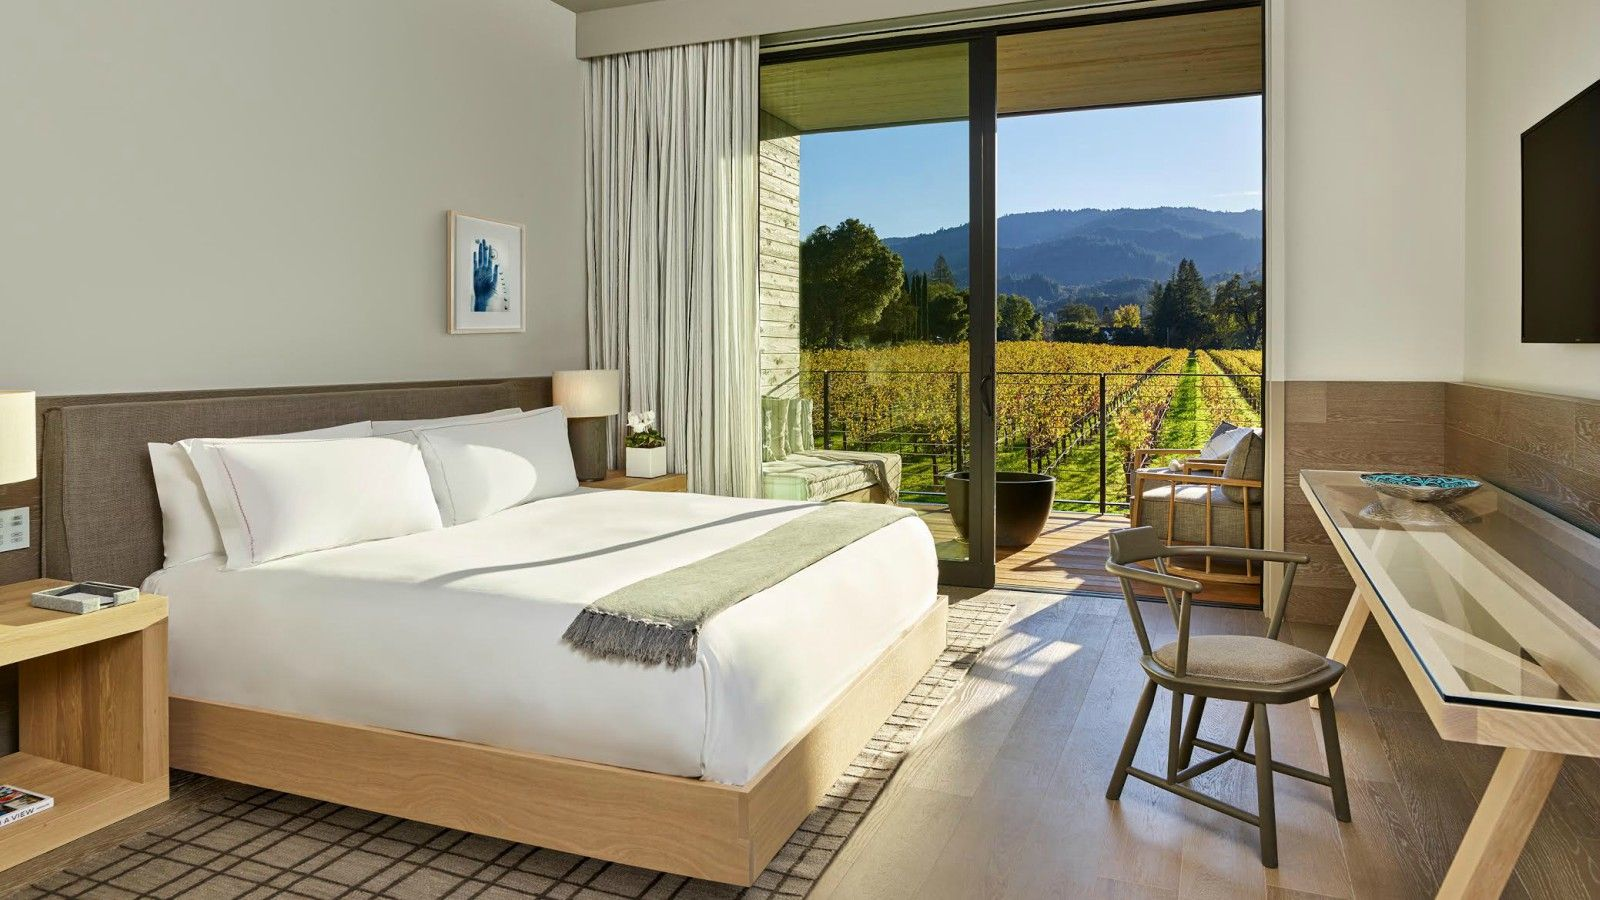 Napa Valley Hotels >> Napa Valley Hotels Bed Breakfast Inns And Resorts Find